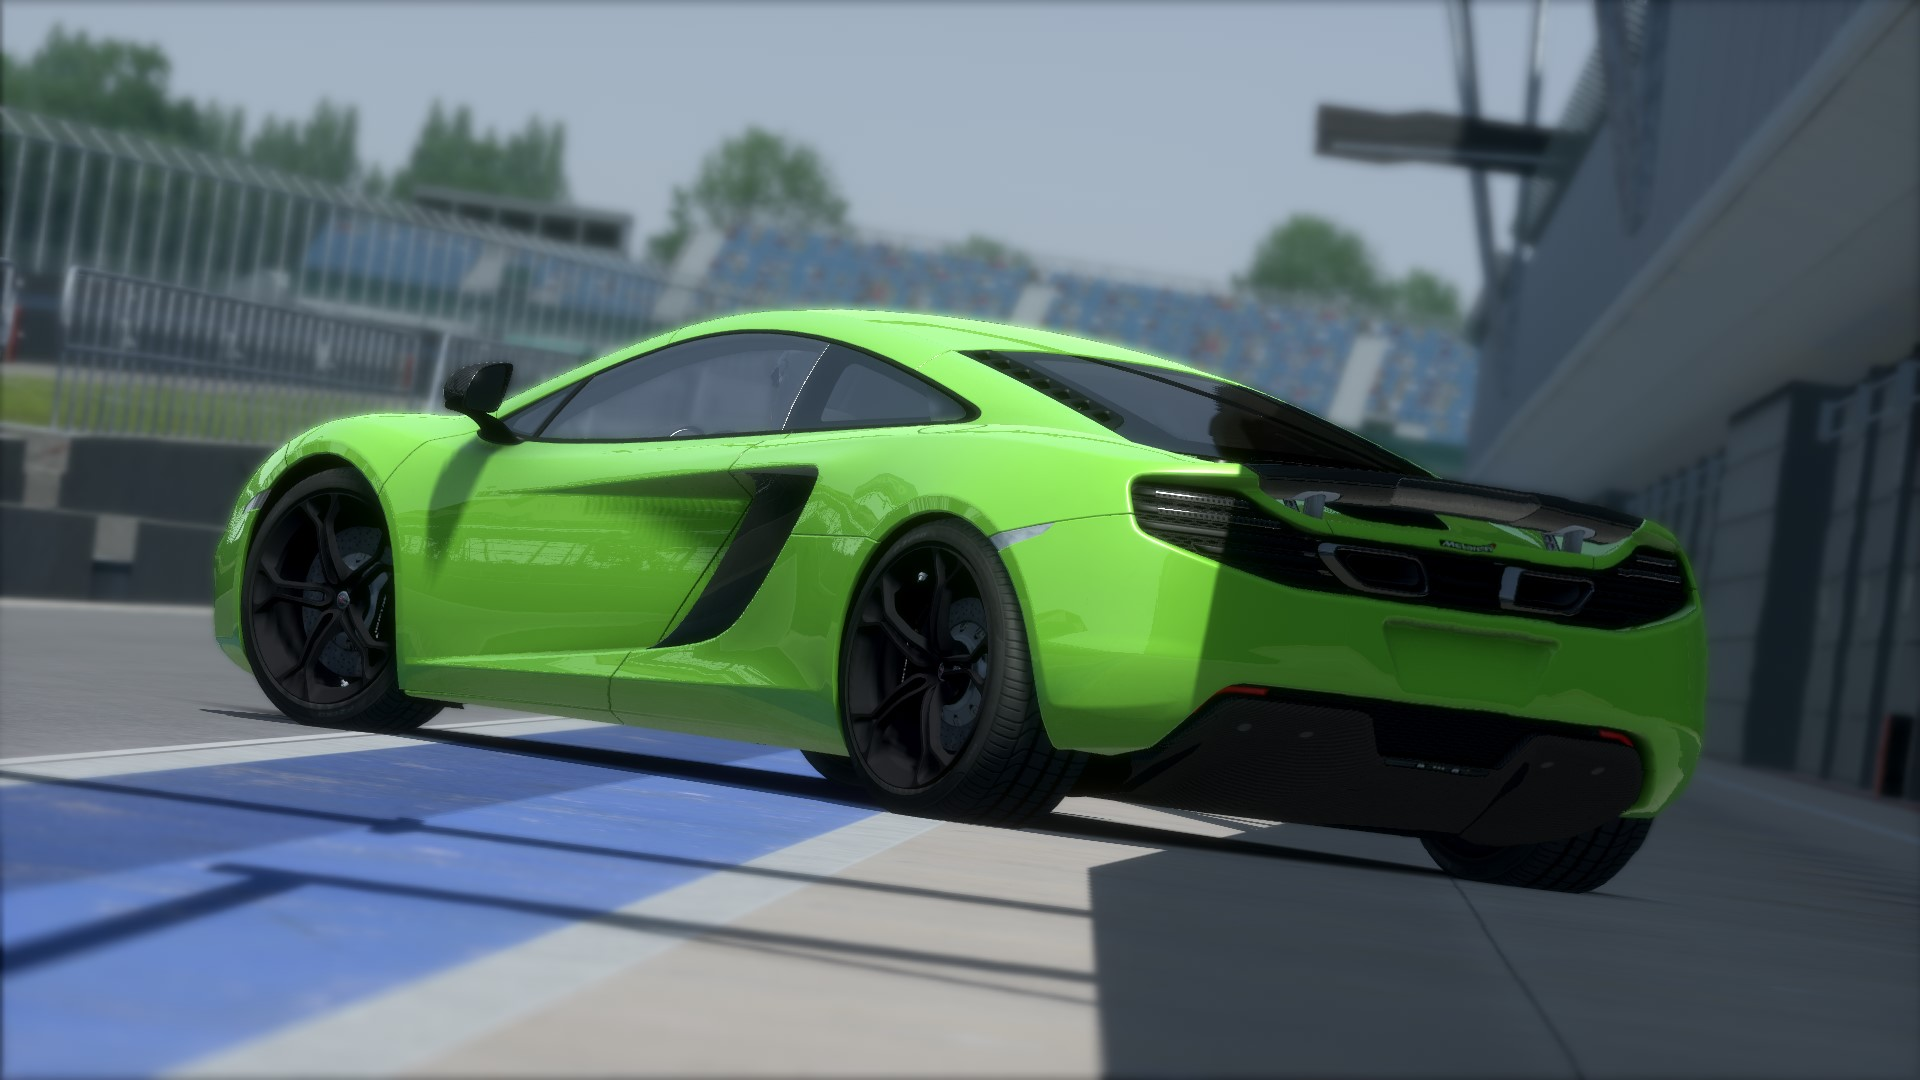 Screenshot_mclaren_mp412c_silverstone_11-8-115-1-38-1.jpg